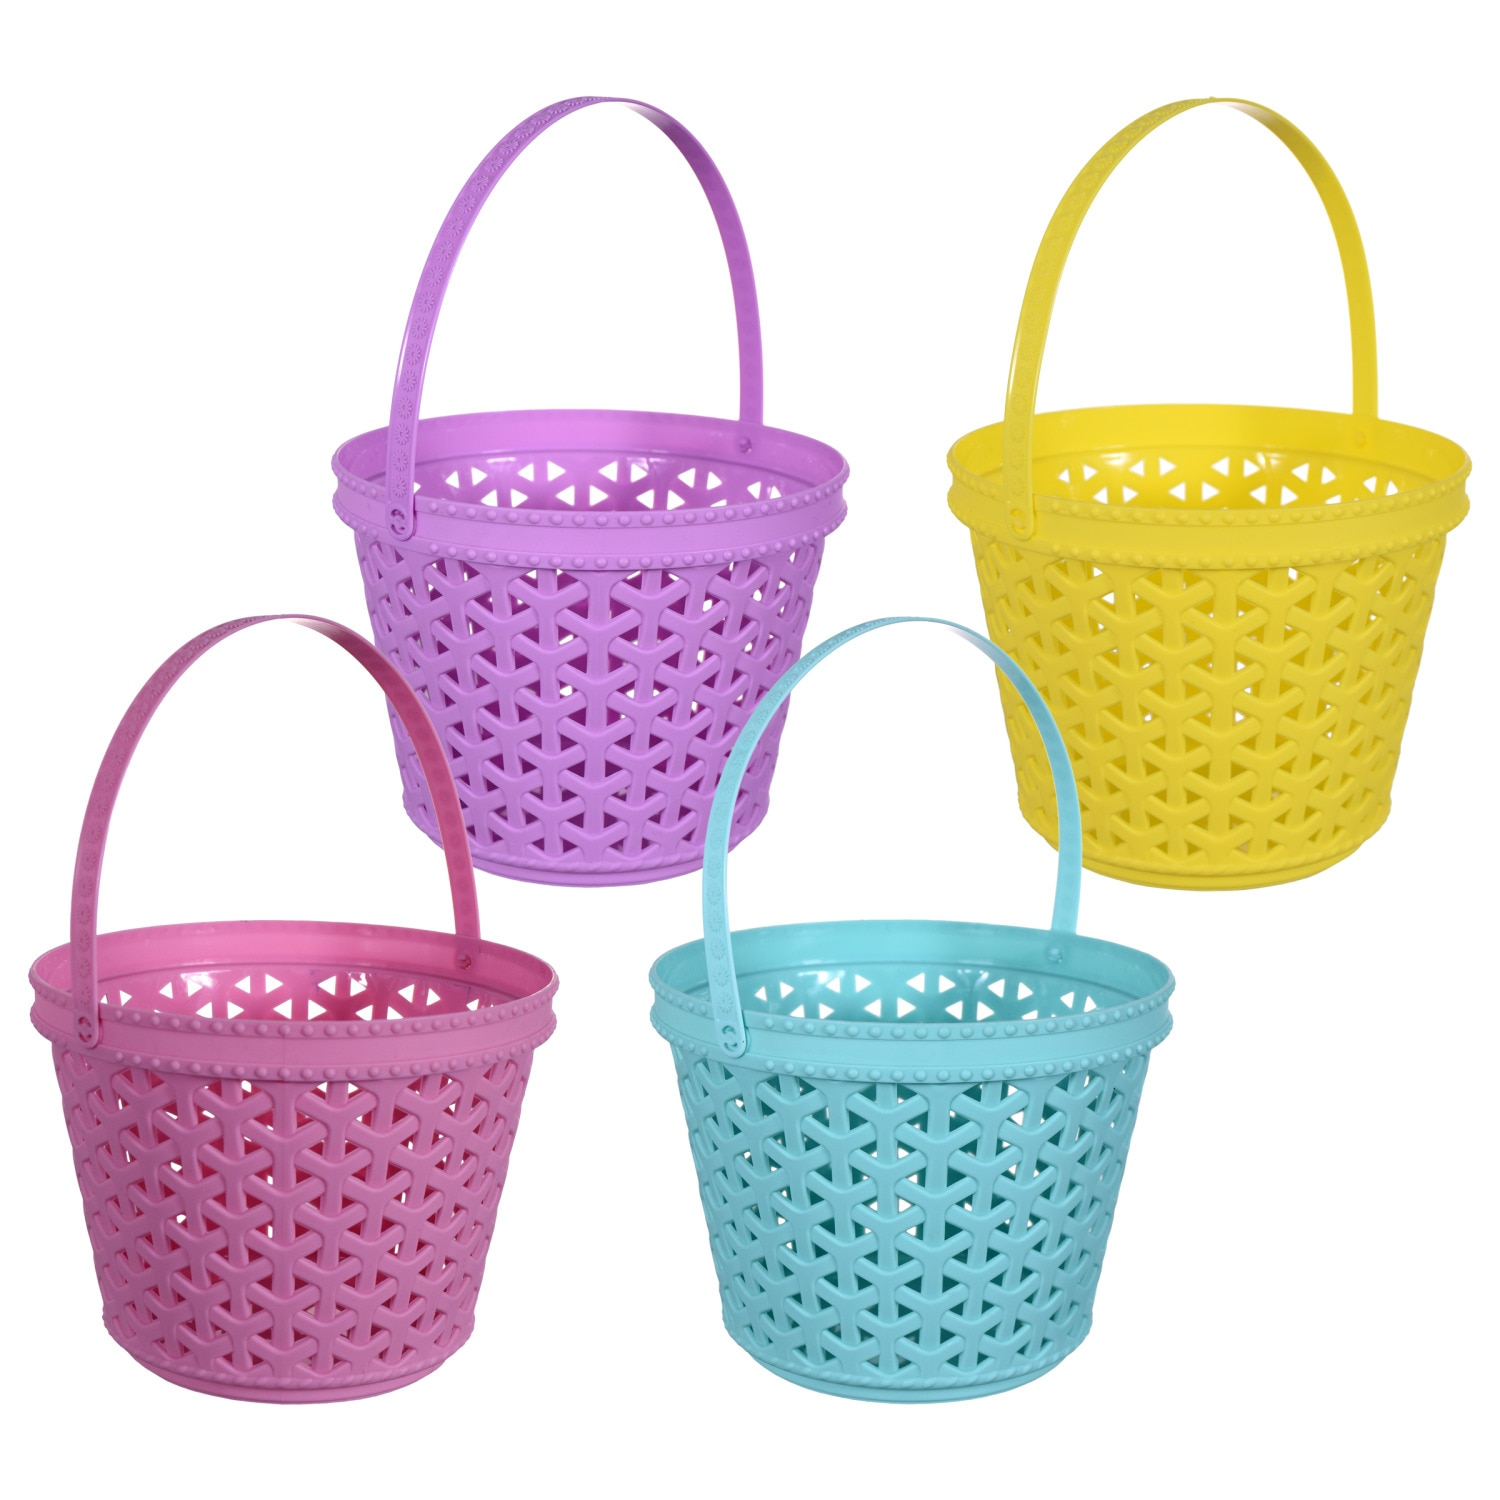 Bright Round Woven Plastic Easter Baskets